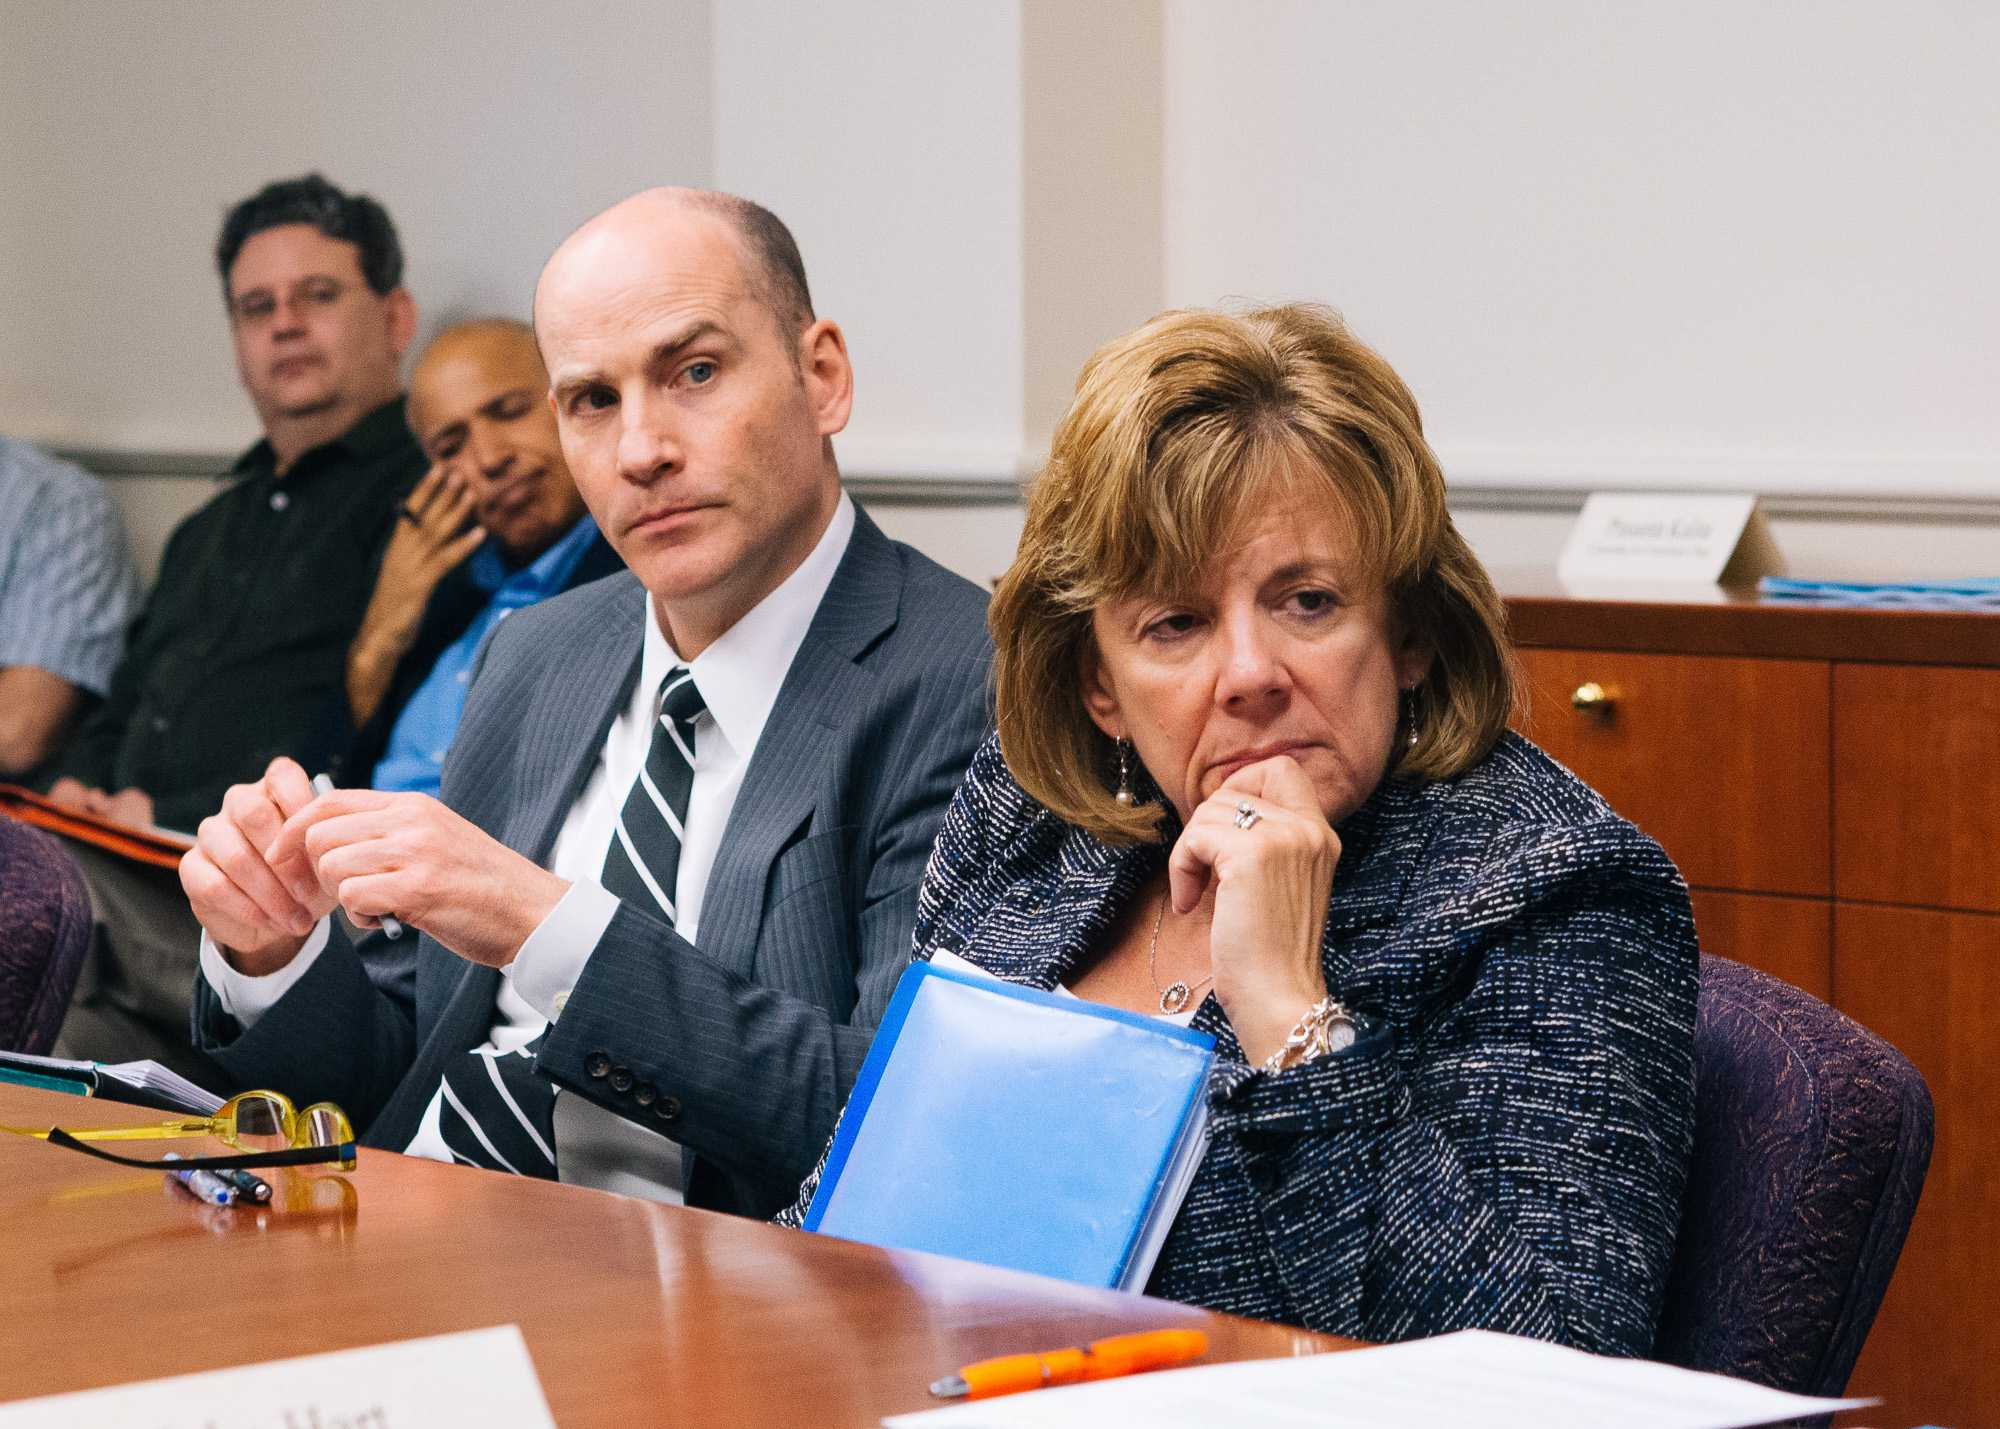 Interim Vice Chancellor Edward Feser and Interim Chancellor Barbara Wilson listen during the SEC meeting in Urbana, IL on  April 25.